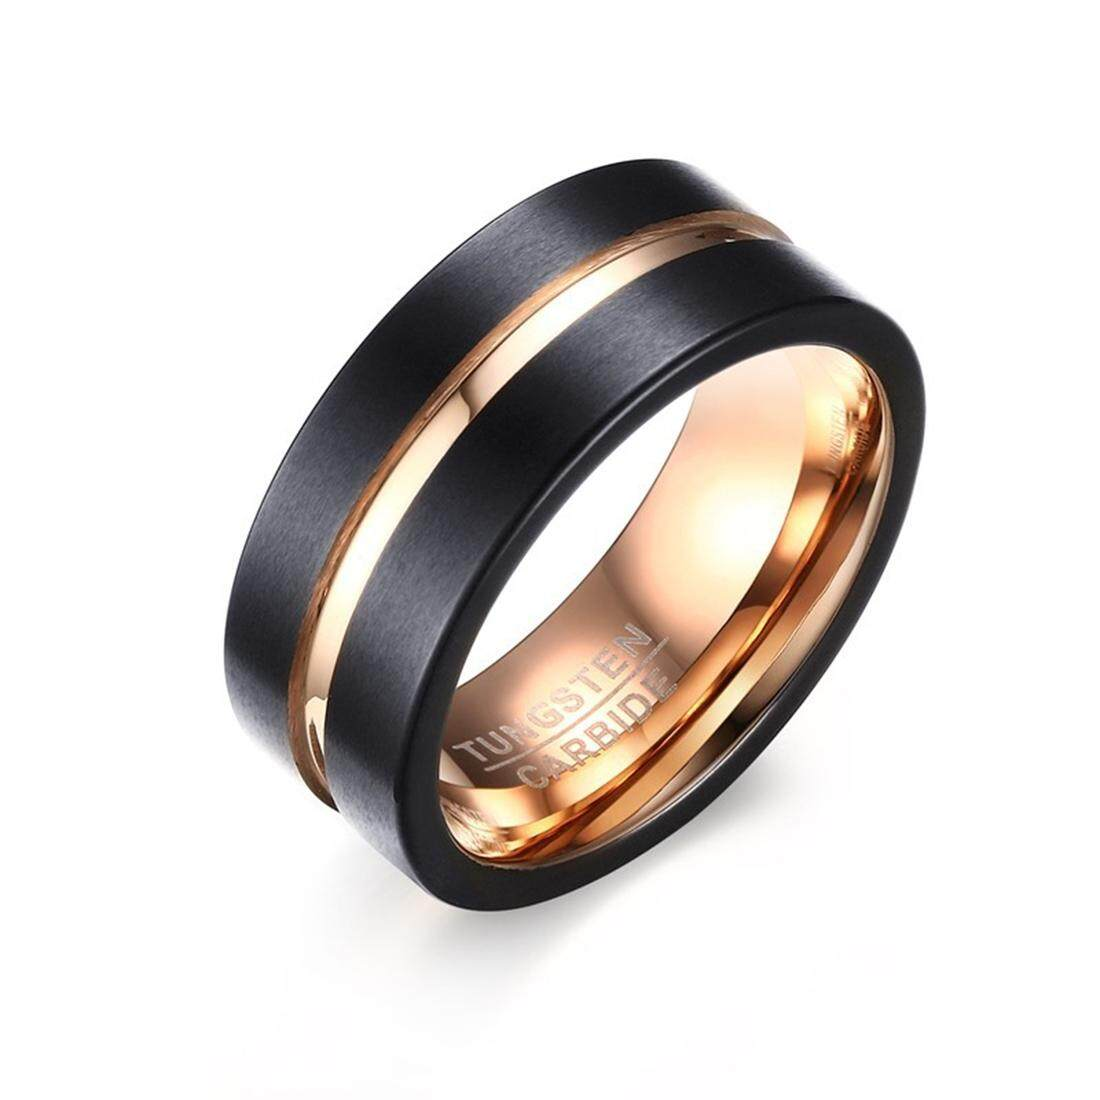 Men Rings Buy At Best Price In Malaysia Chic Classic Wedding Ring Cincin Kawin Tunangan Pernikahan 2 Europe And America Style Pure Tungsten Carbide Hand Brushed Rose Gold Plating